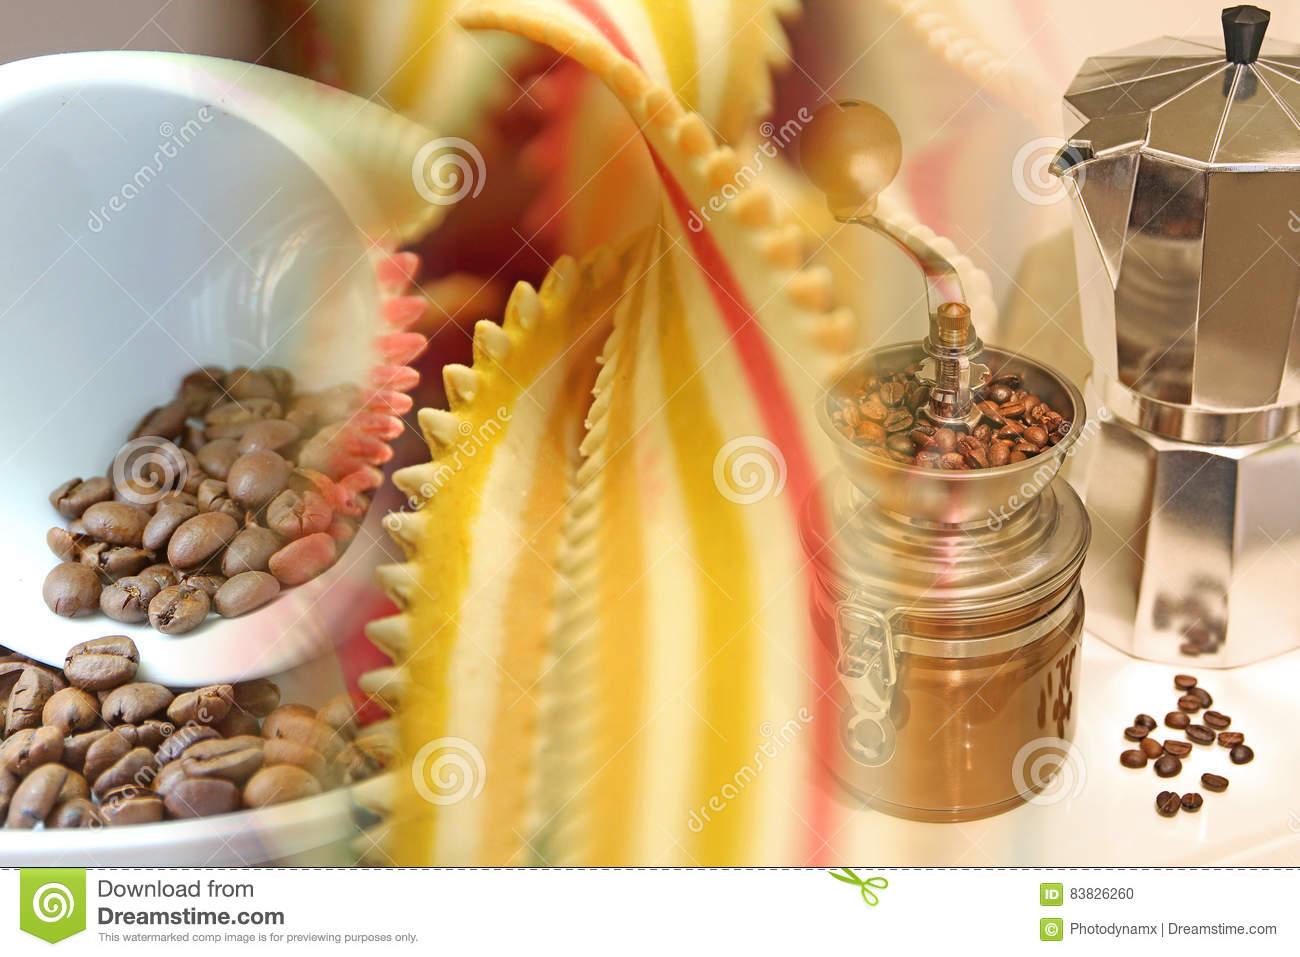 Coffee and pasta collage